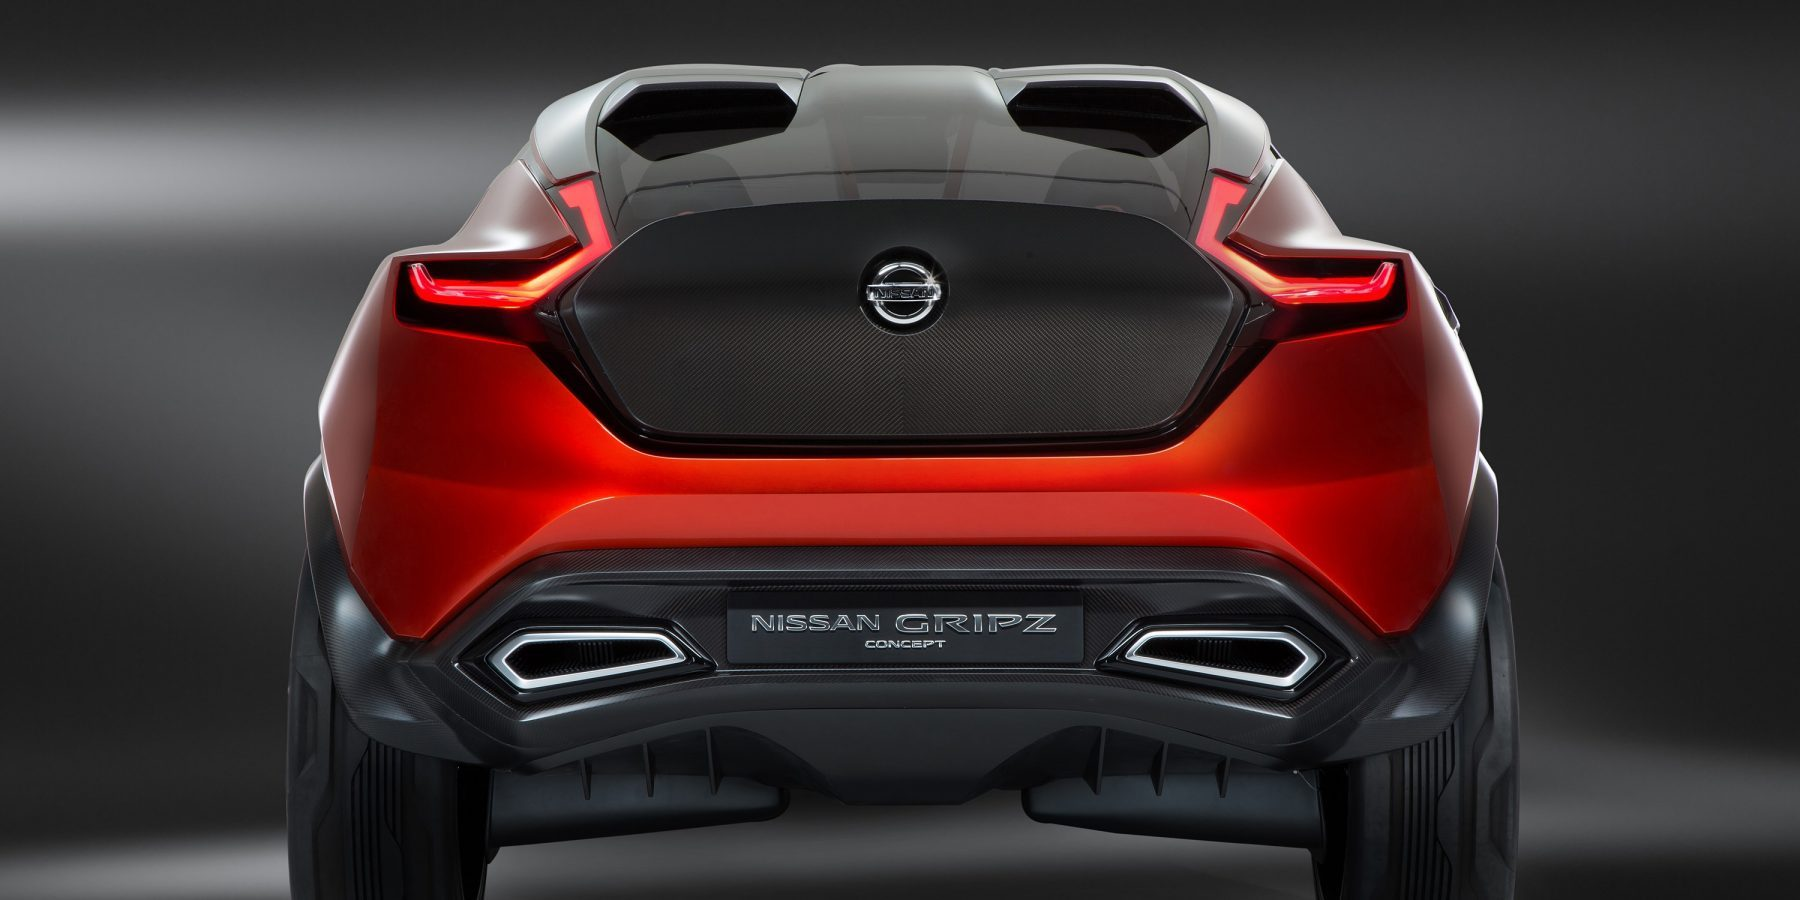 Gripz Concept rear in studio